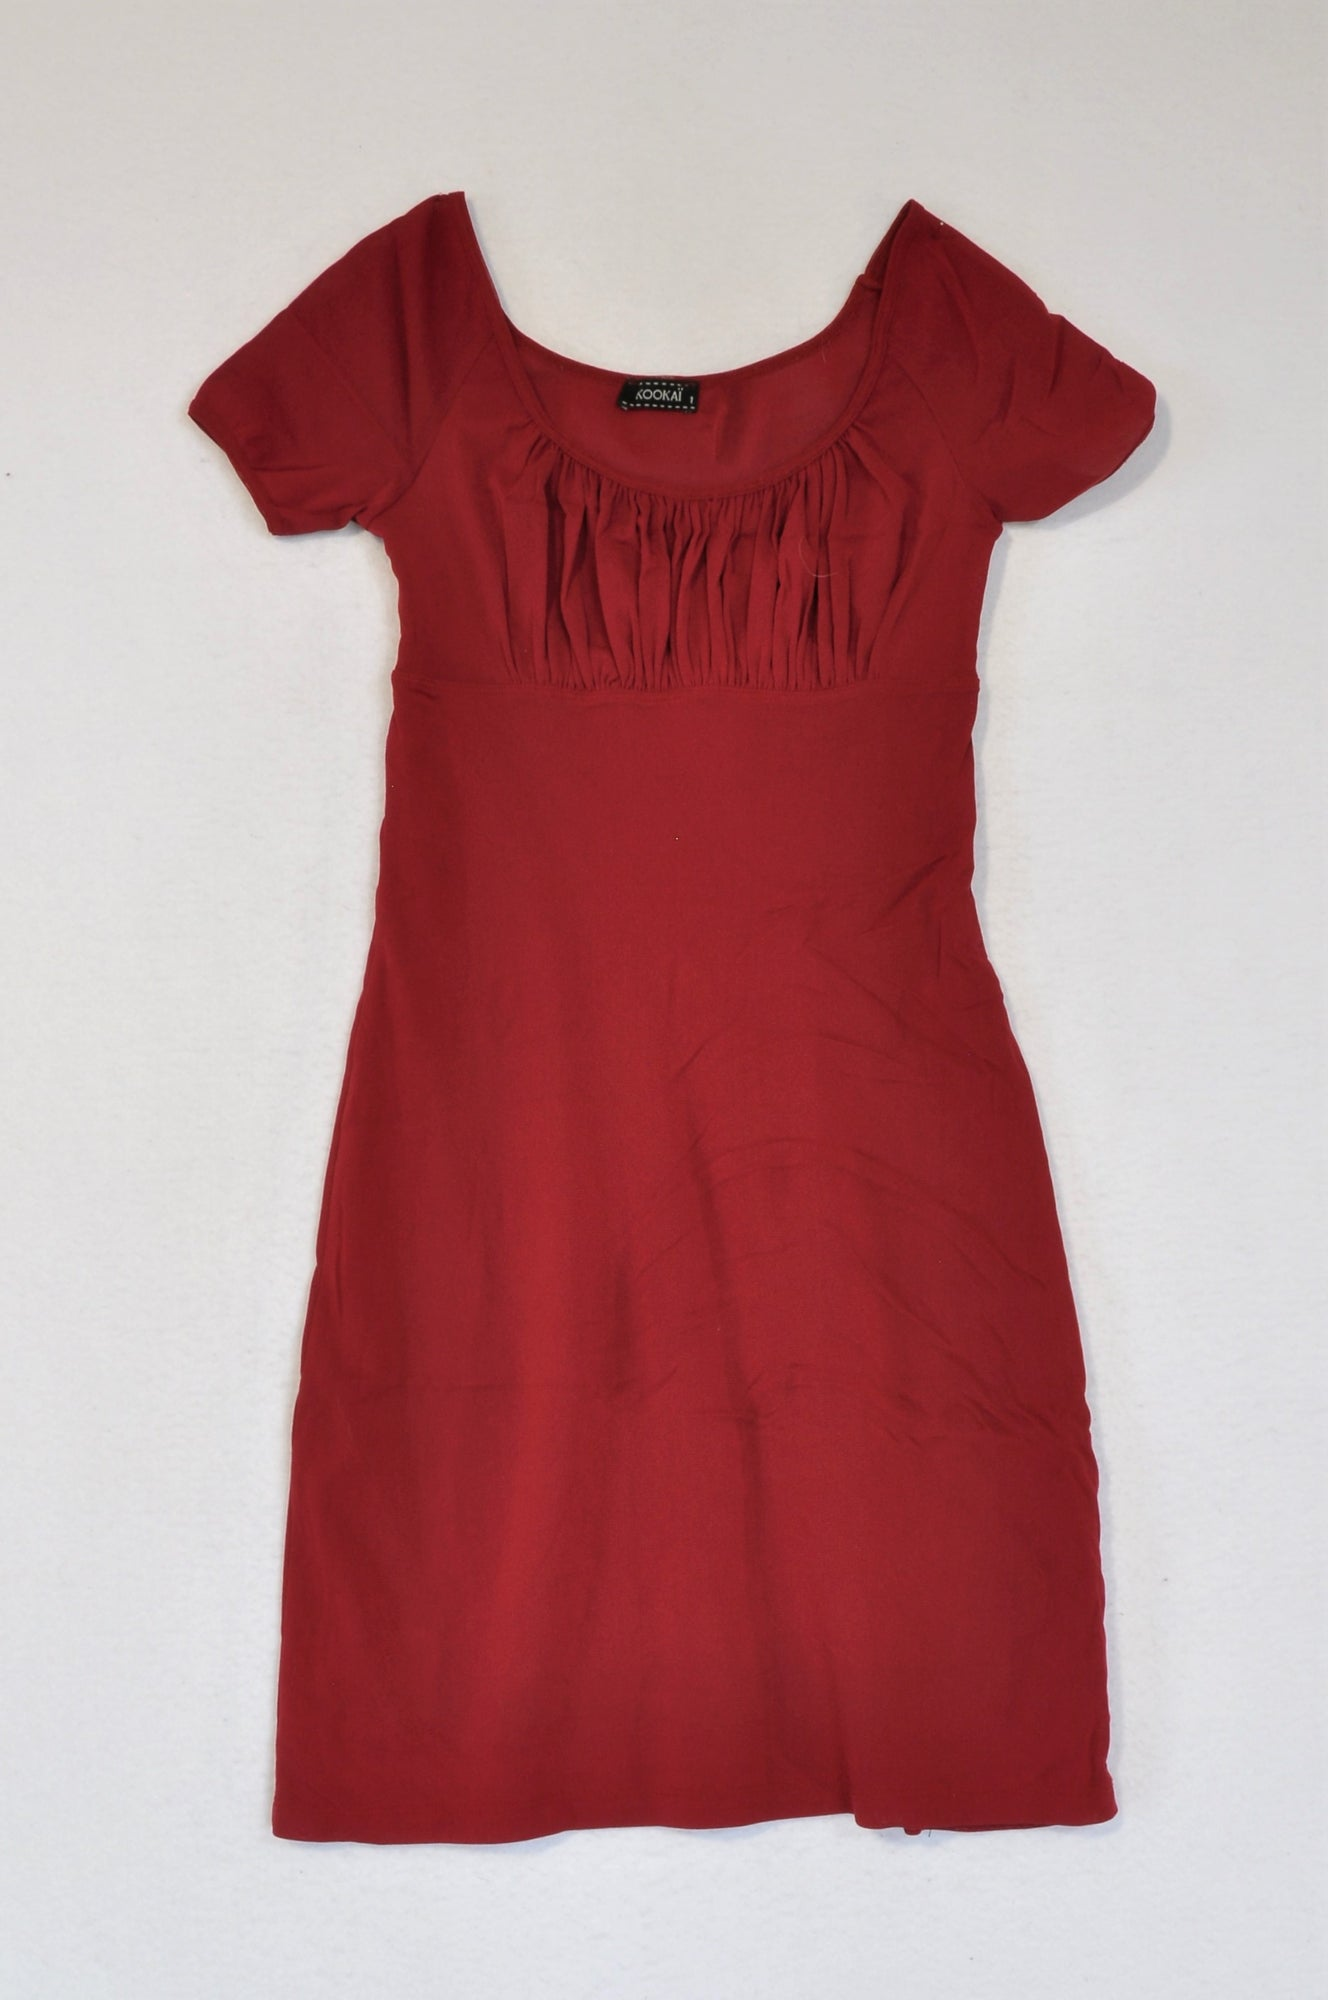 Kookai Maroon Mesh Dress Women Size S